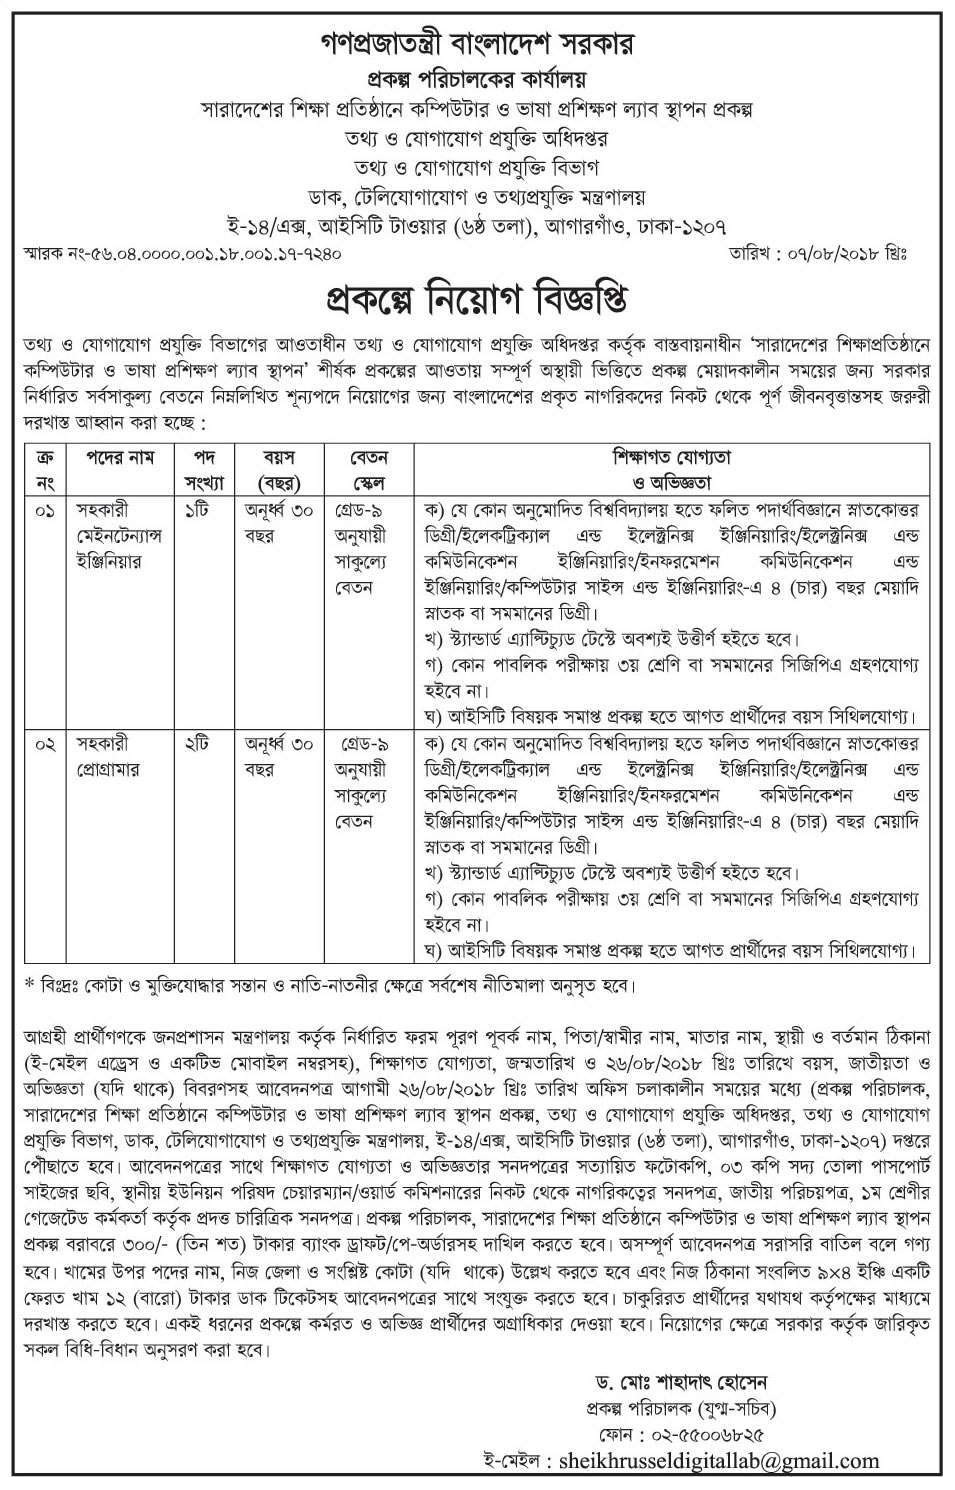 Directorate of Information and Communication Technology Job Circular